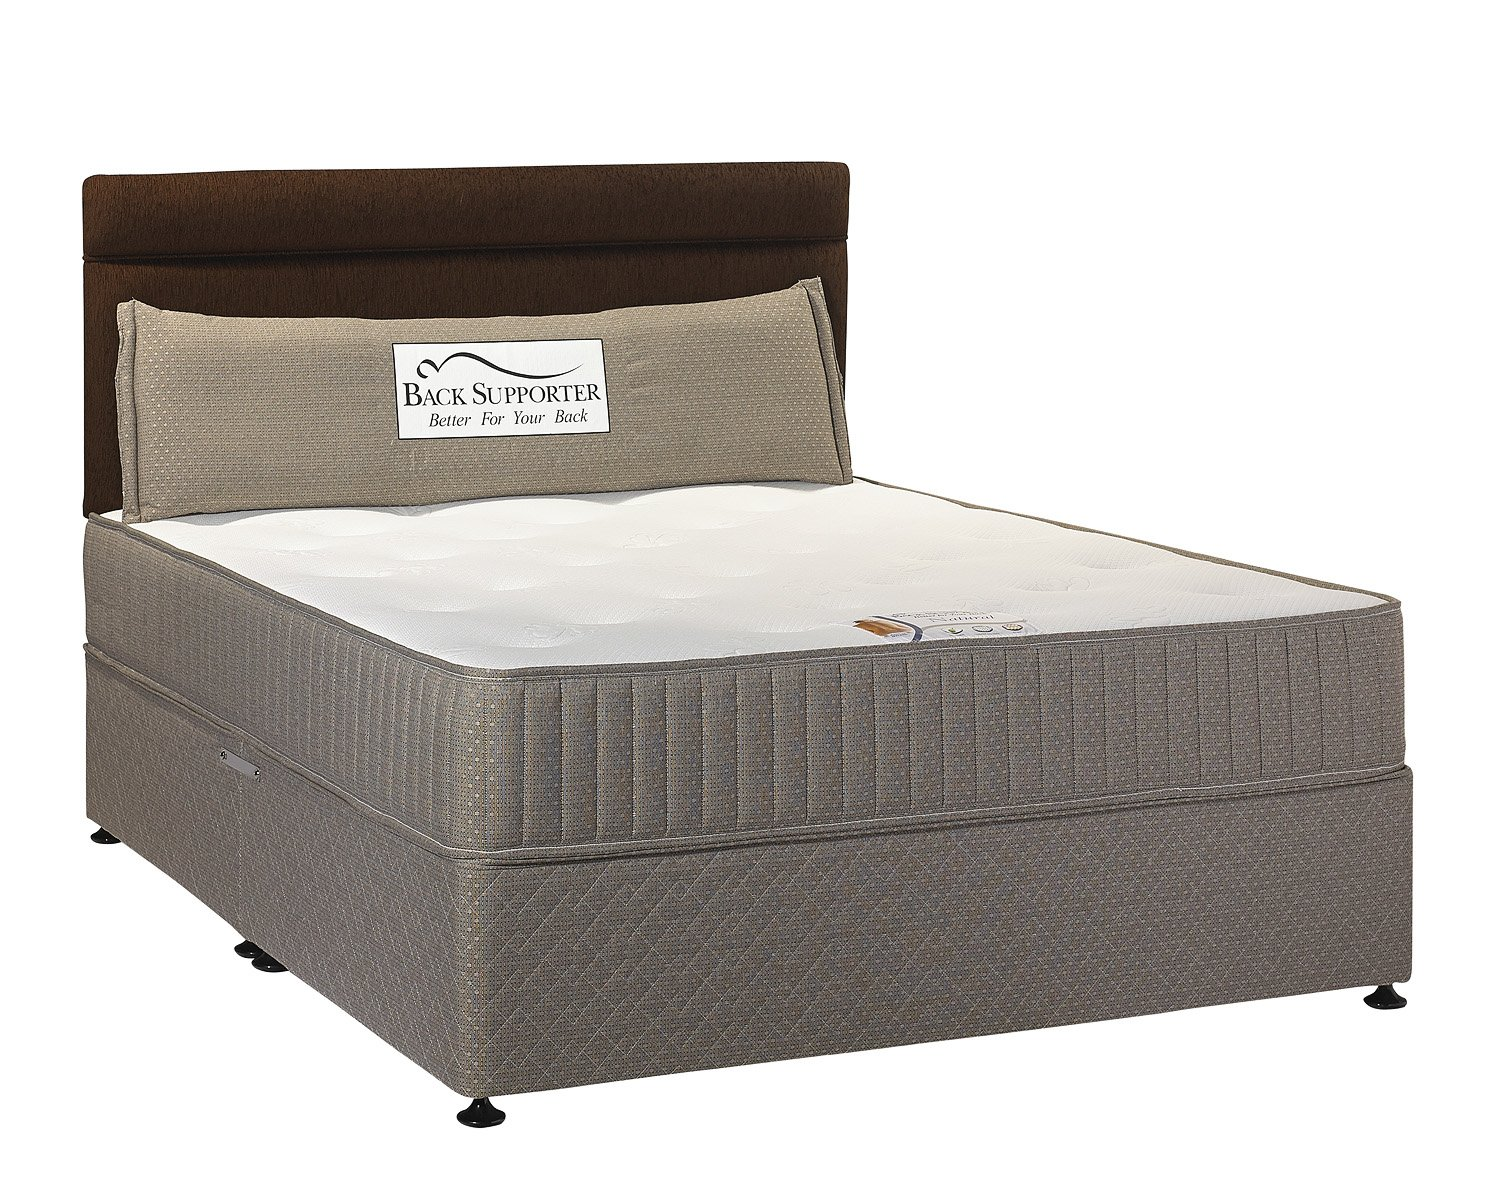 Back Supporter Reflex 5' Divan Bed